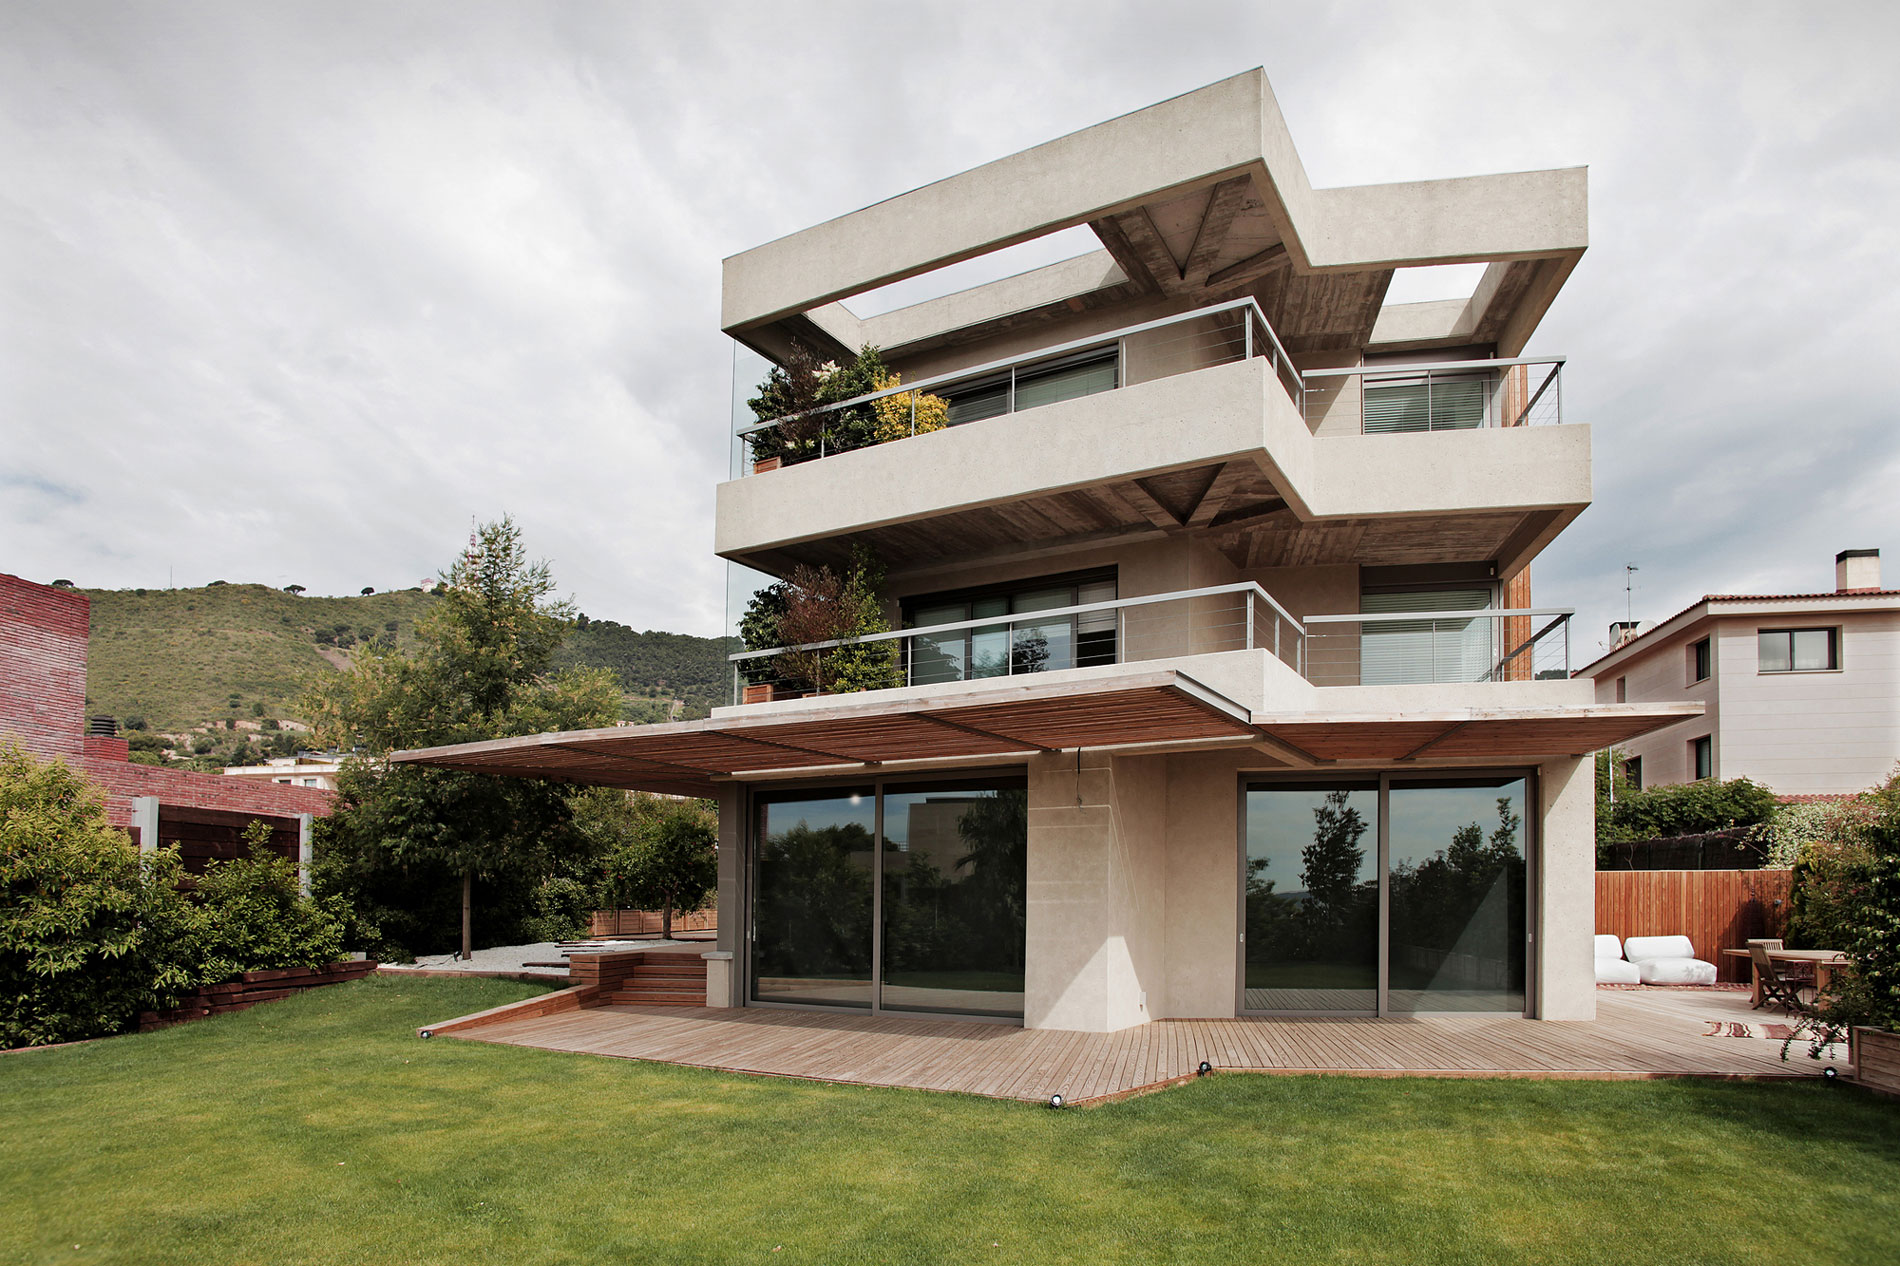 House Pedralbes by BCarquitectos (5)